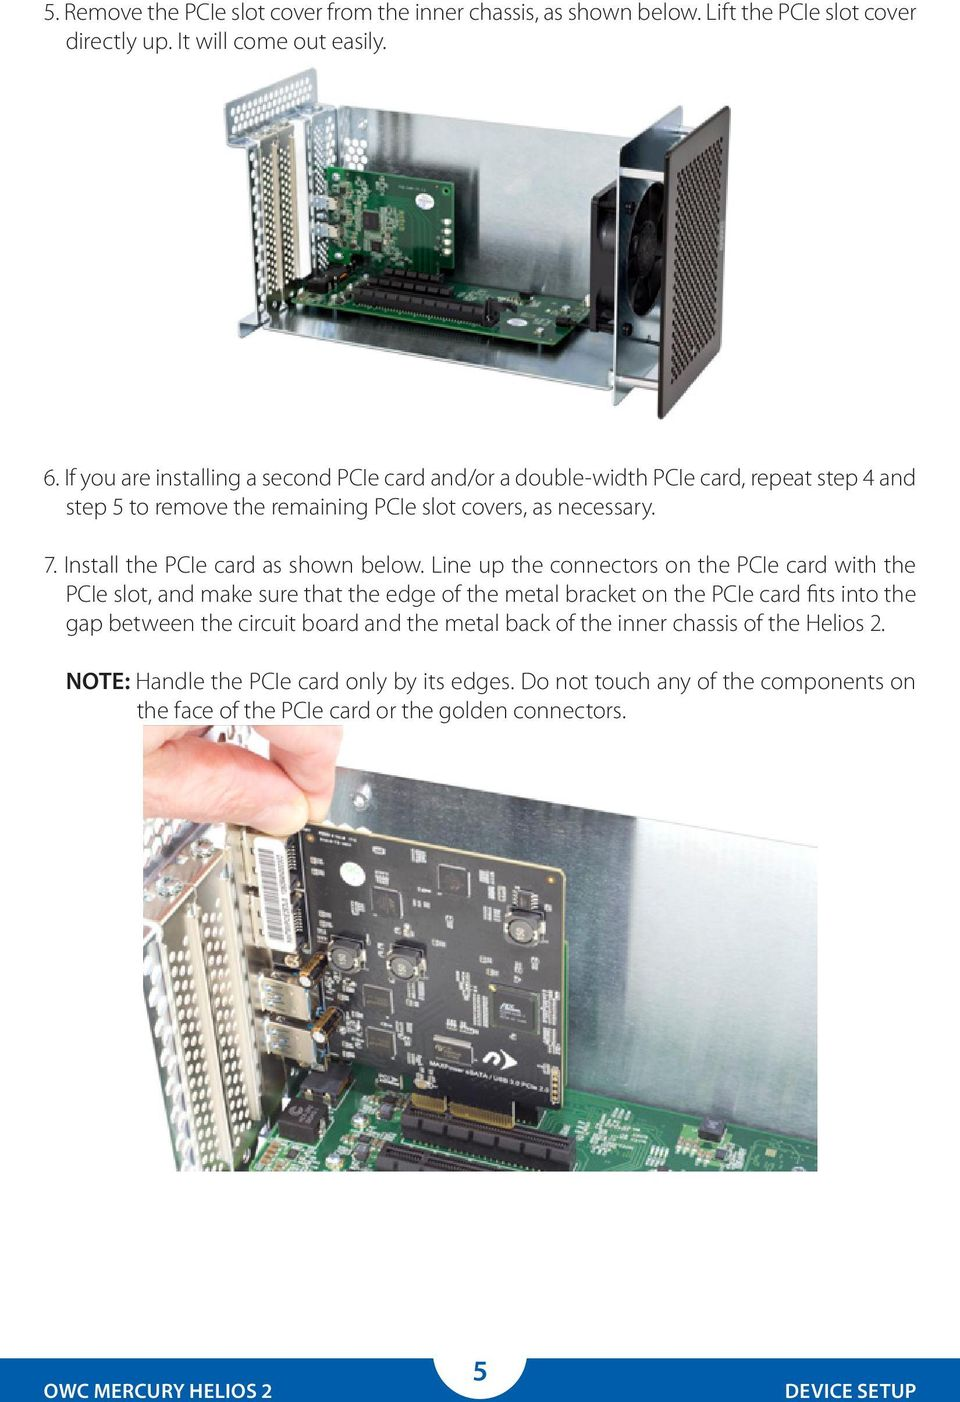 Install the PCIe card as shown below.